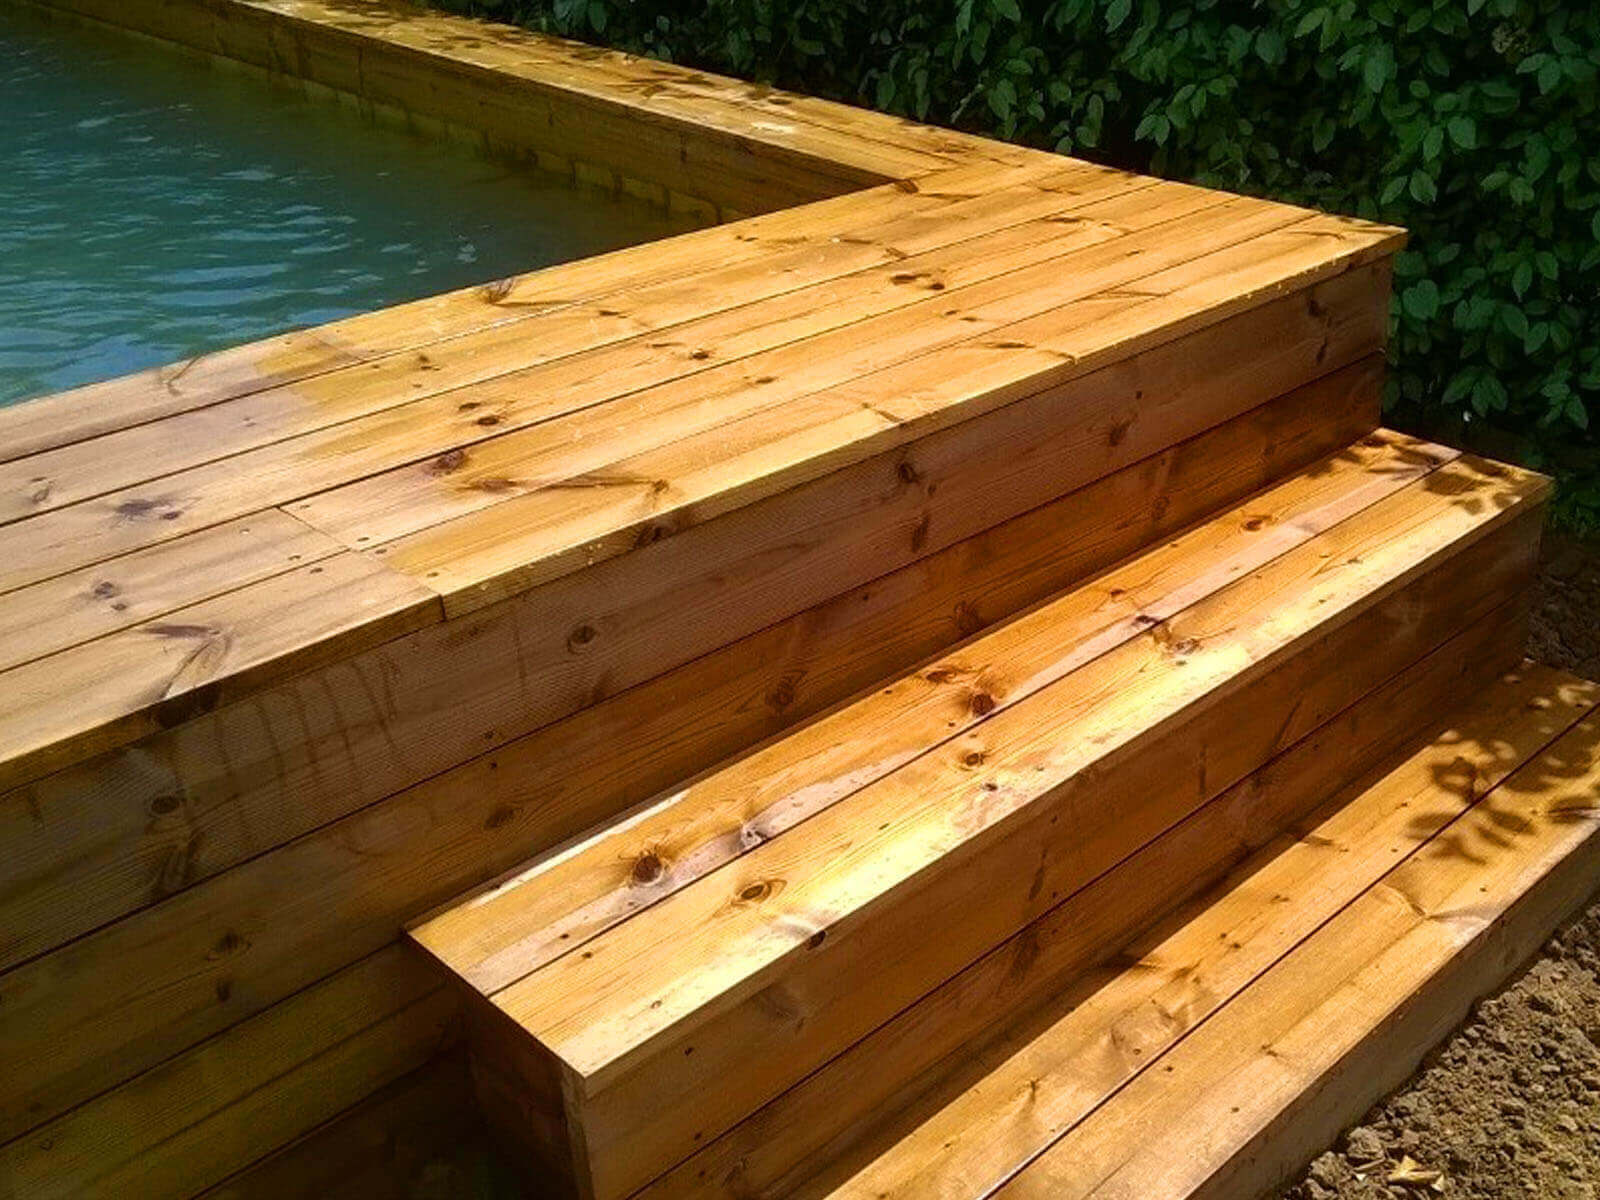 Bassin en bois hors sol fashion designs for Piscine hors sol bois carree